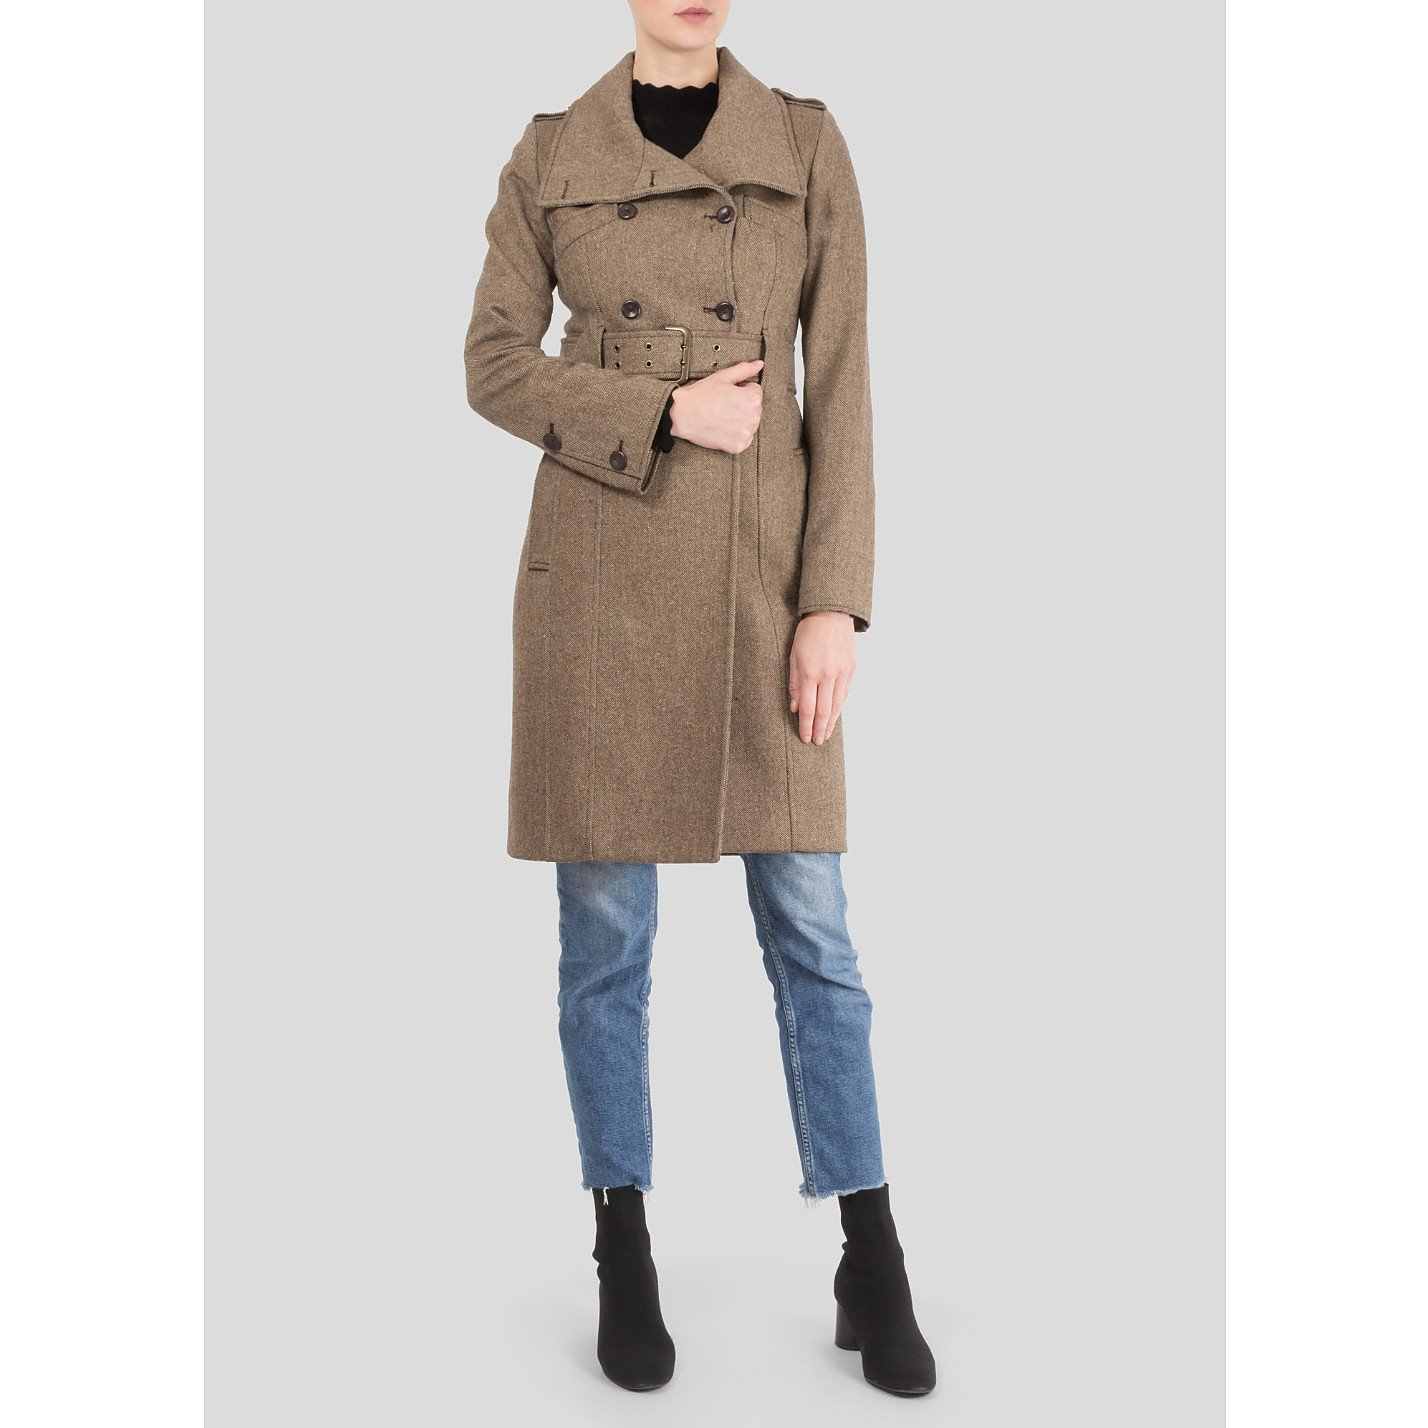 Patrizia Pepe Double Breasted Wool-Blend Coat